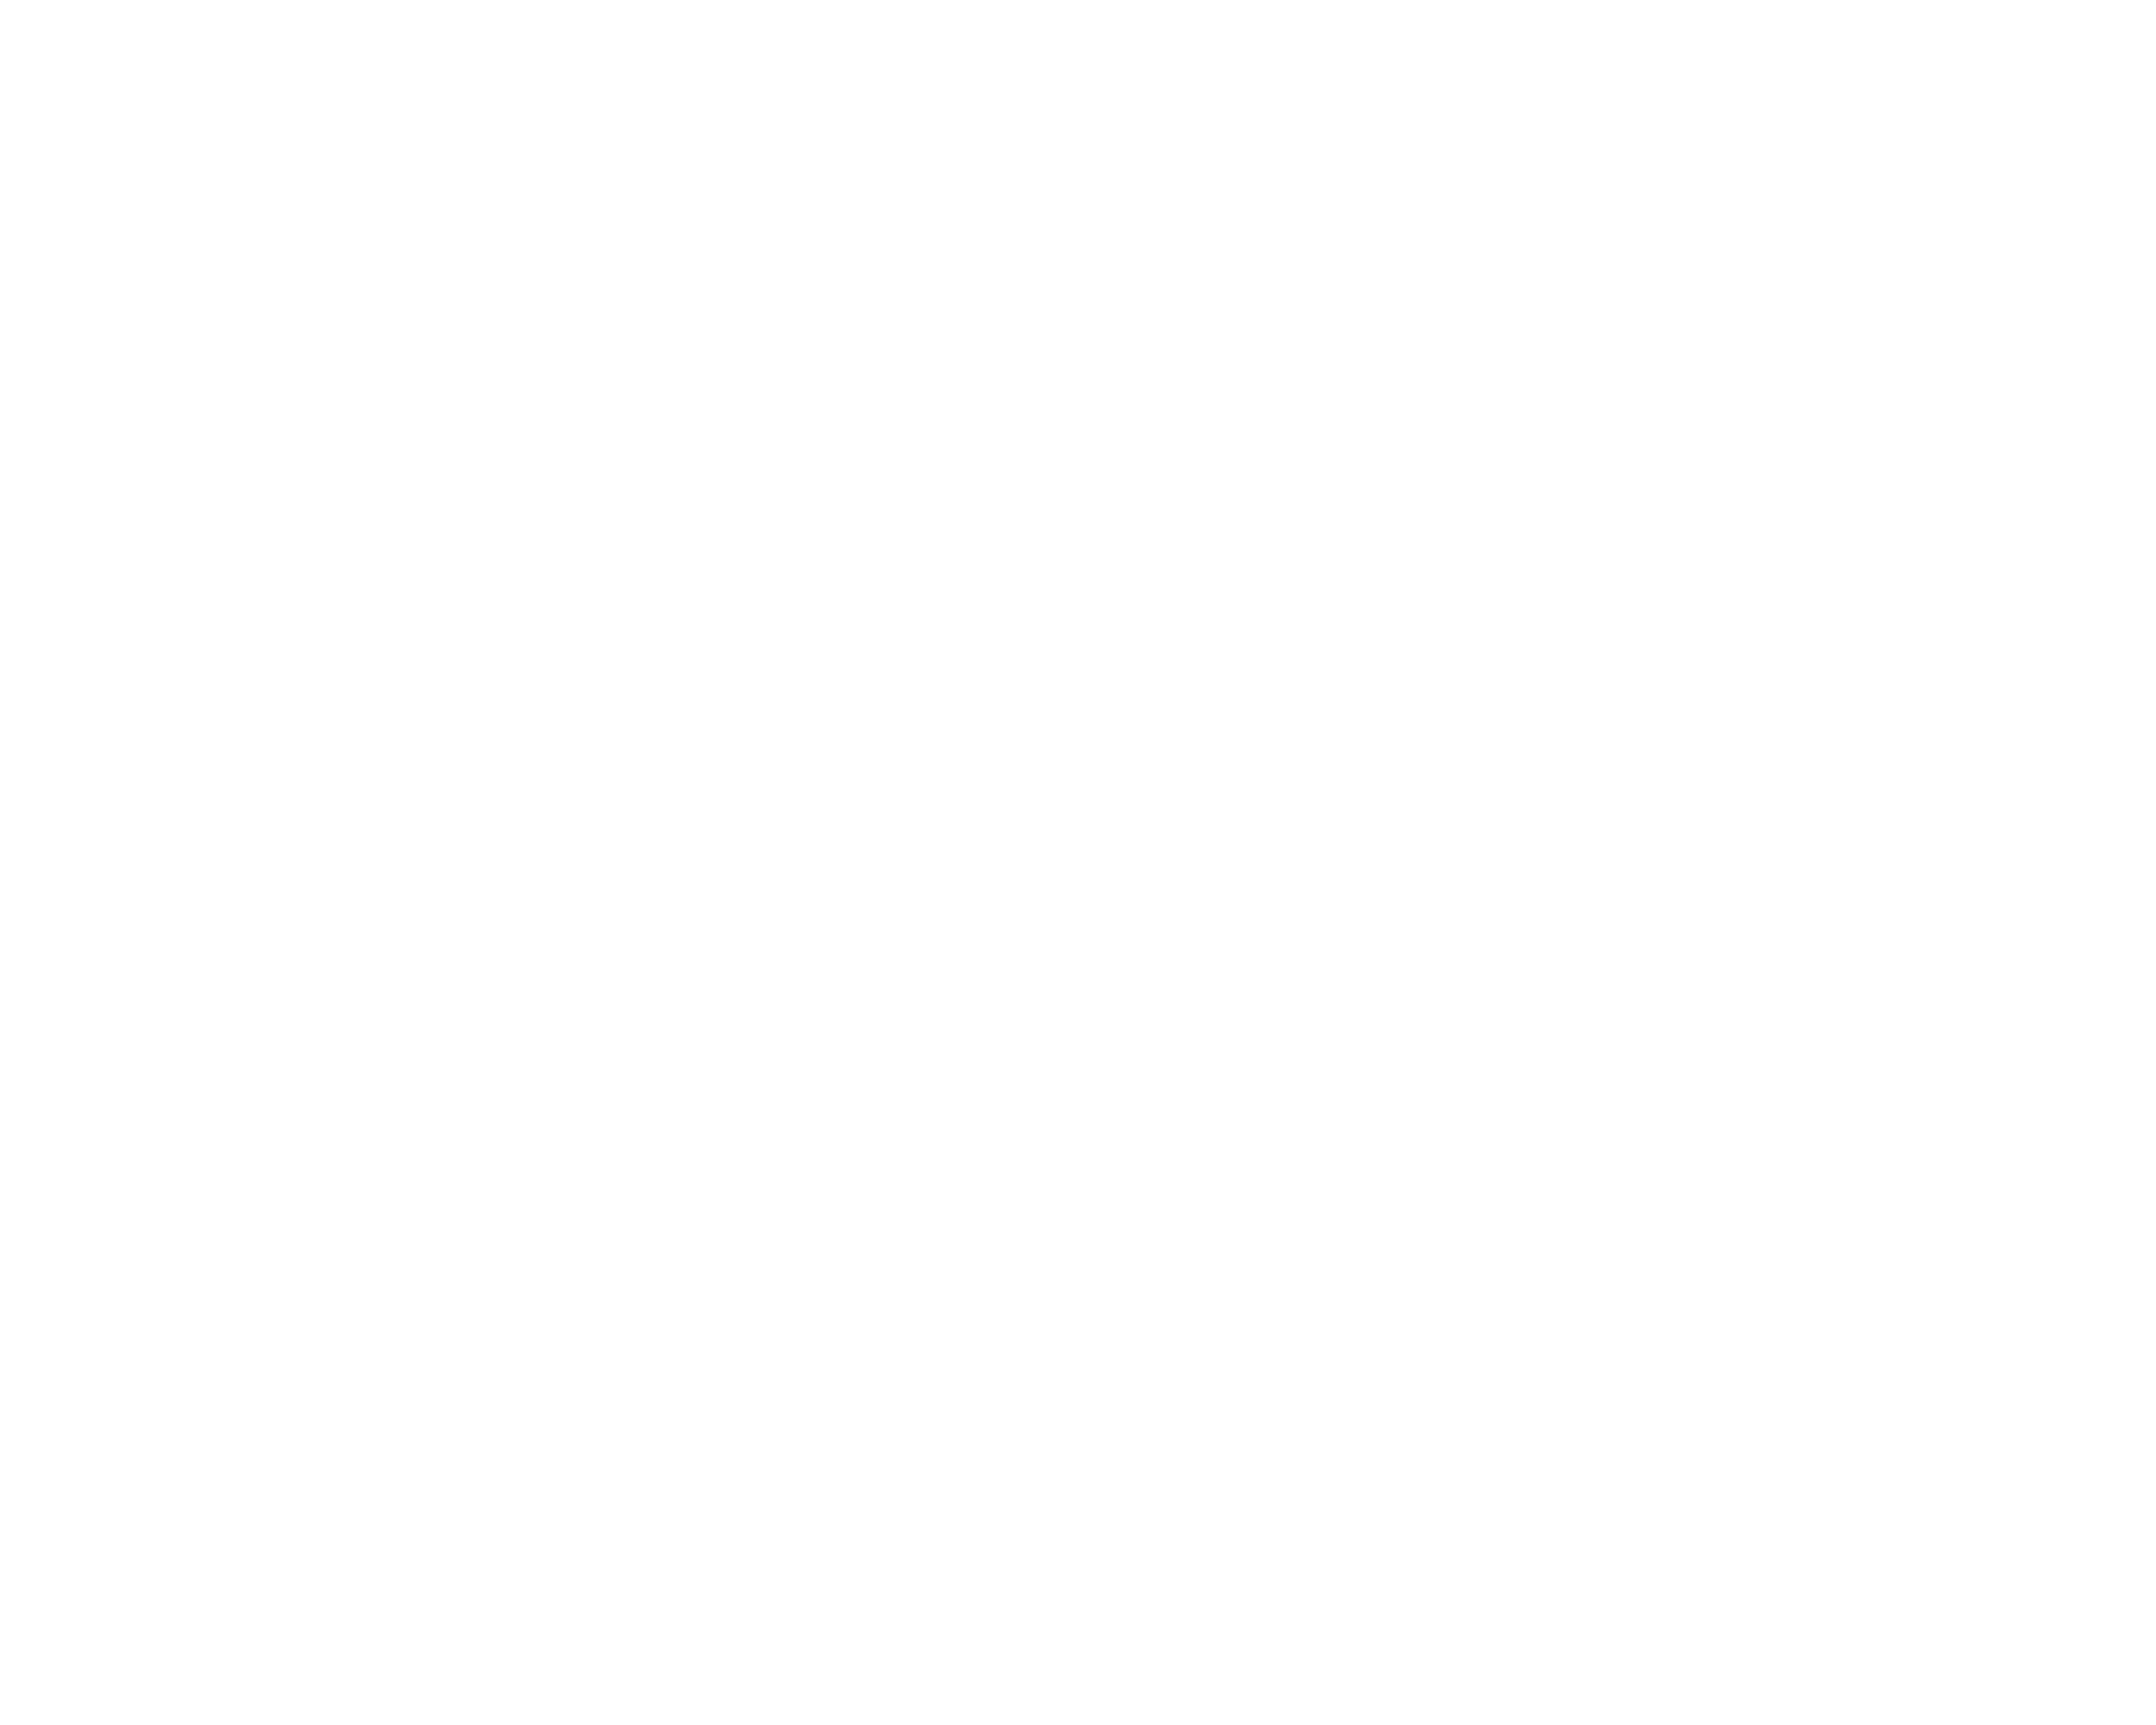 mcdonalds-15-logo-black-and-white.png